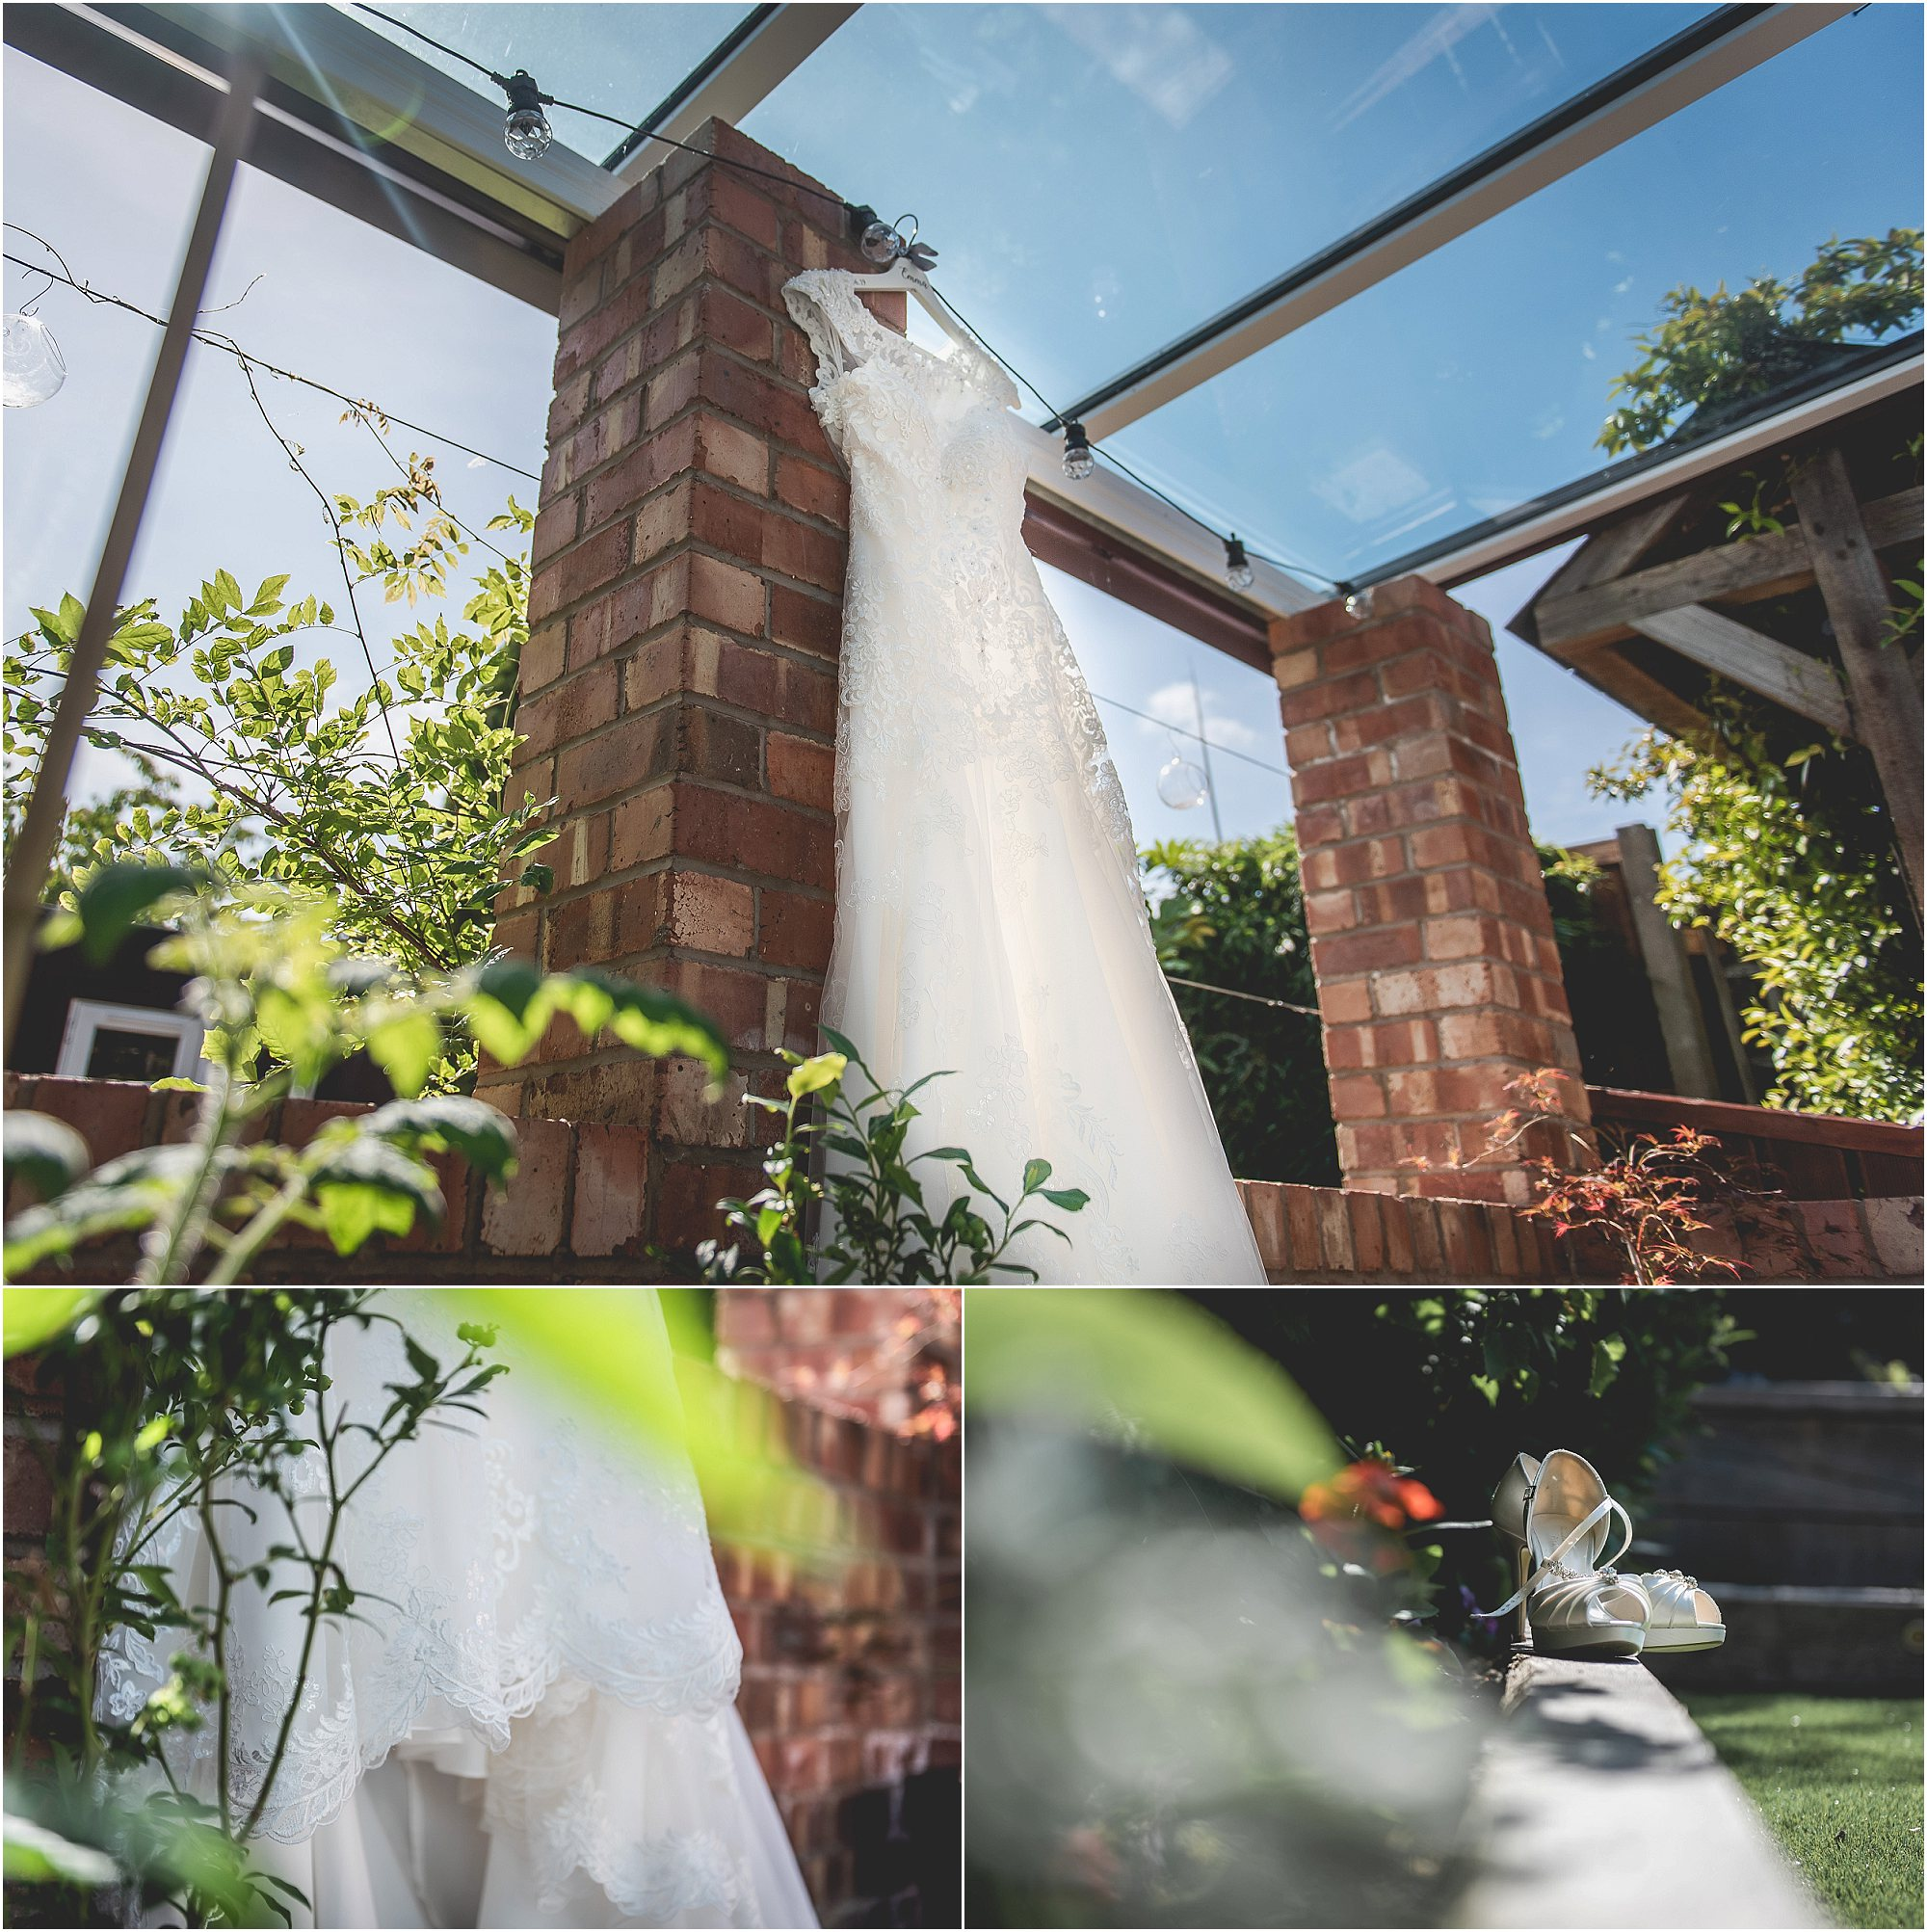 Wedding Dress Handing in garden on a sunny day